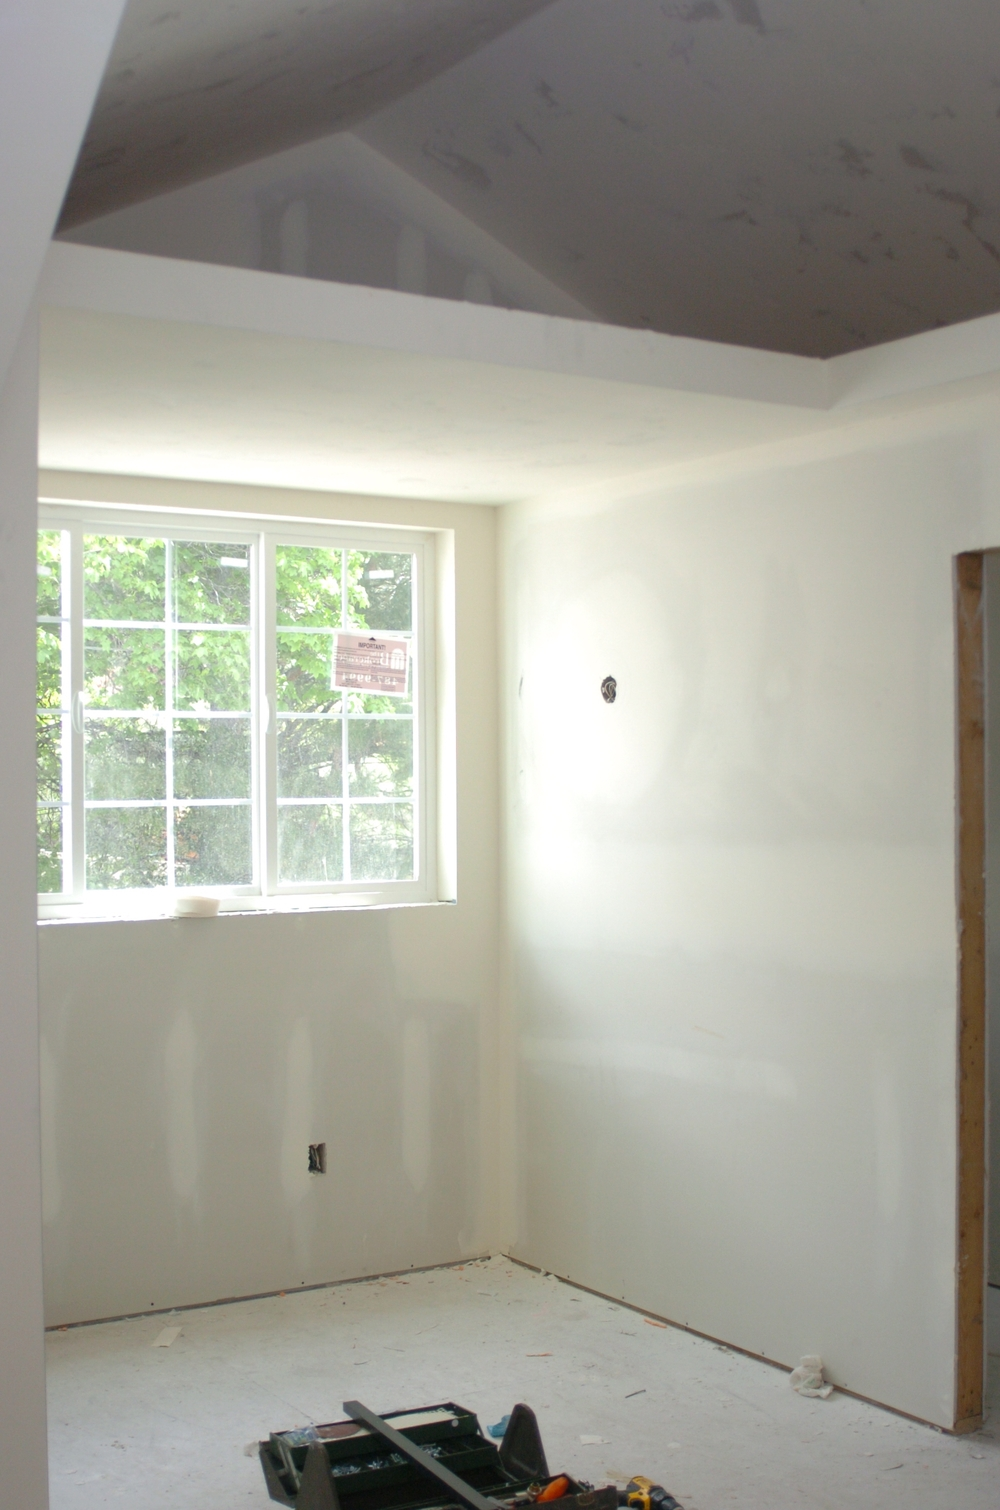 Sleepy Hollow Kid's Room with Loft - Drywall